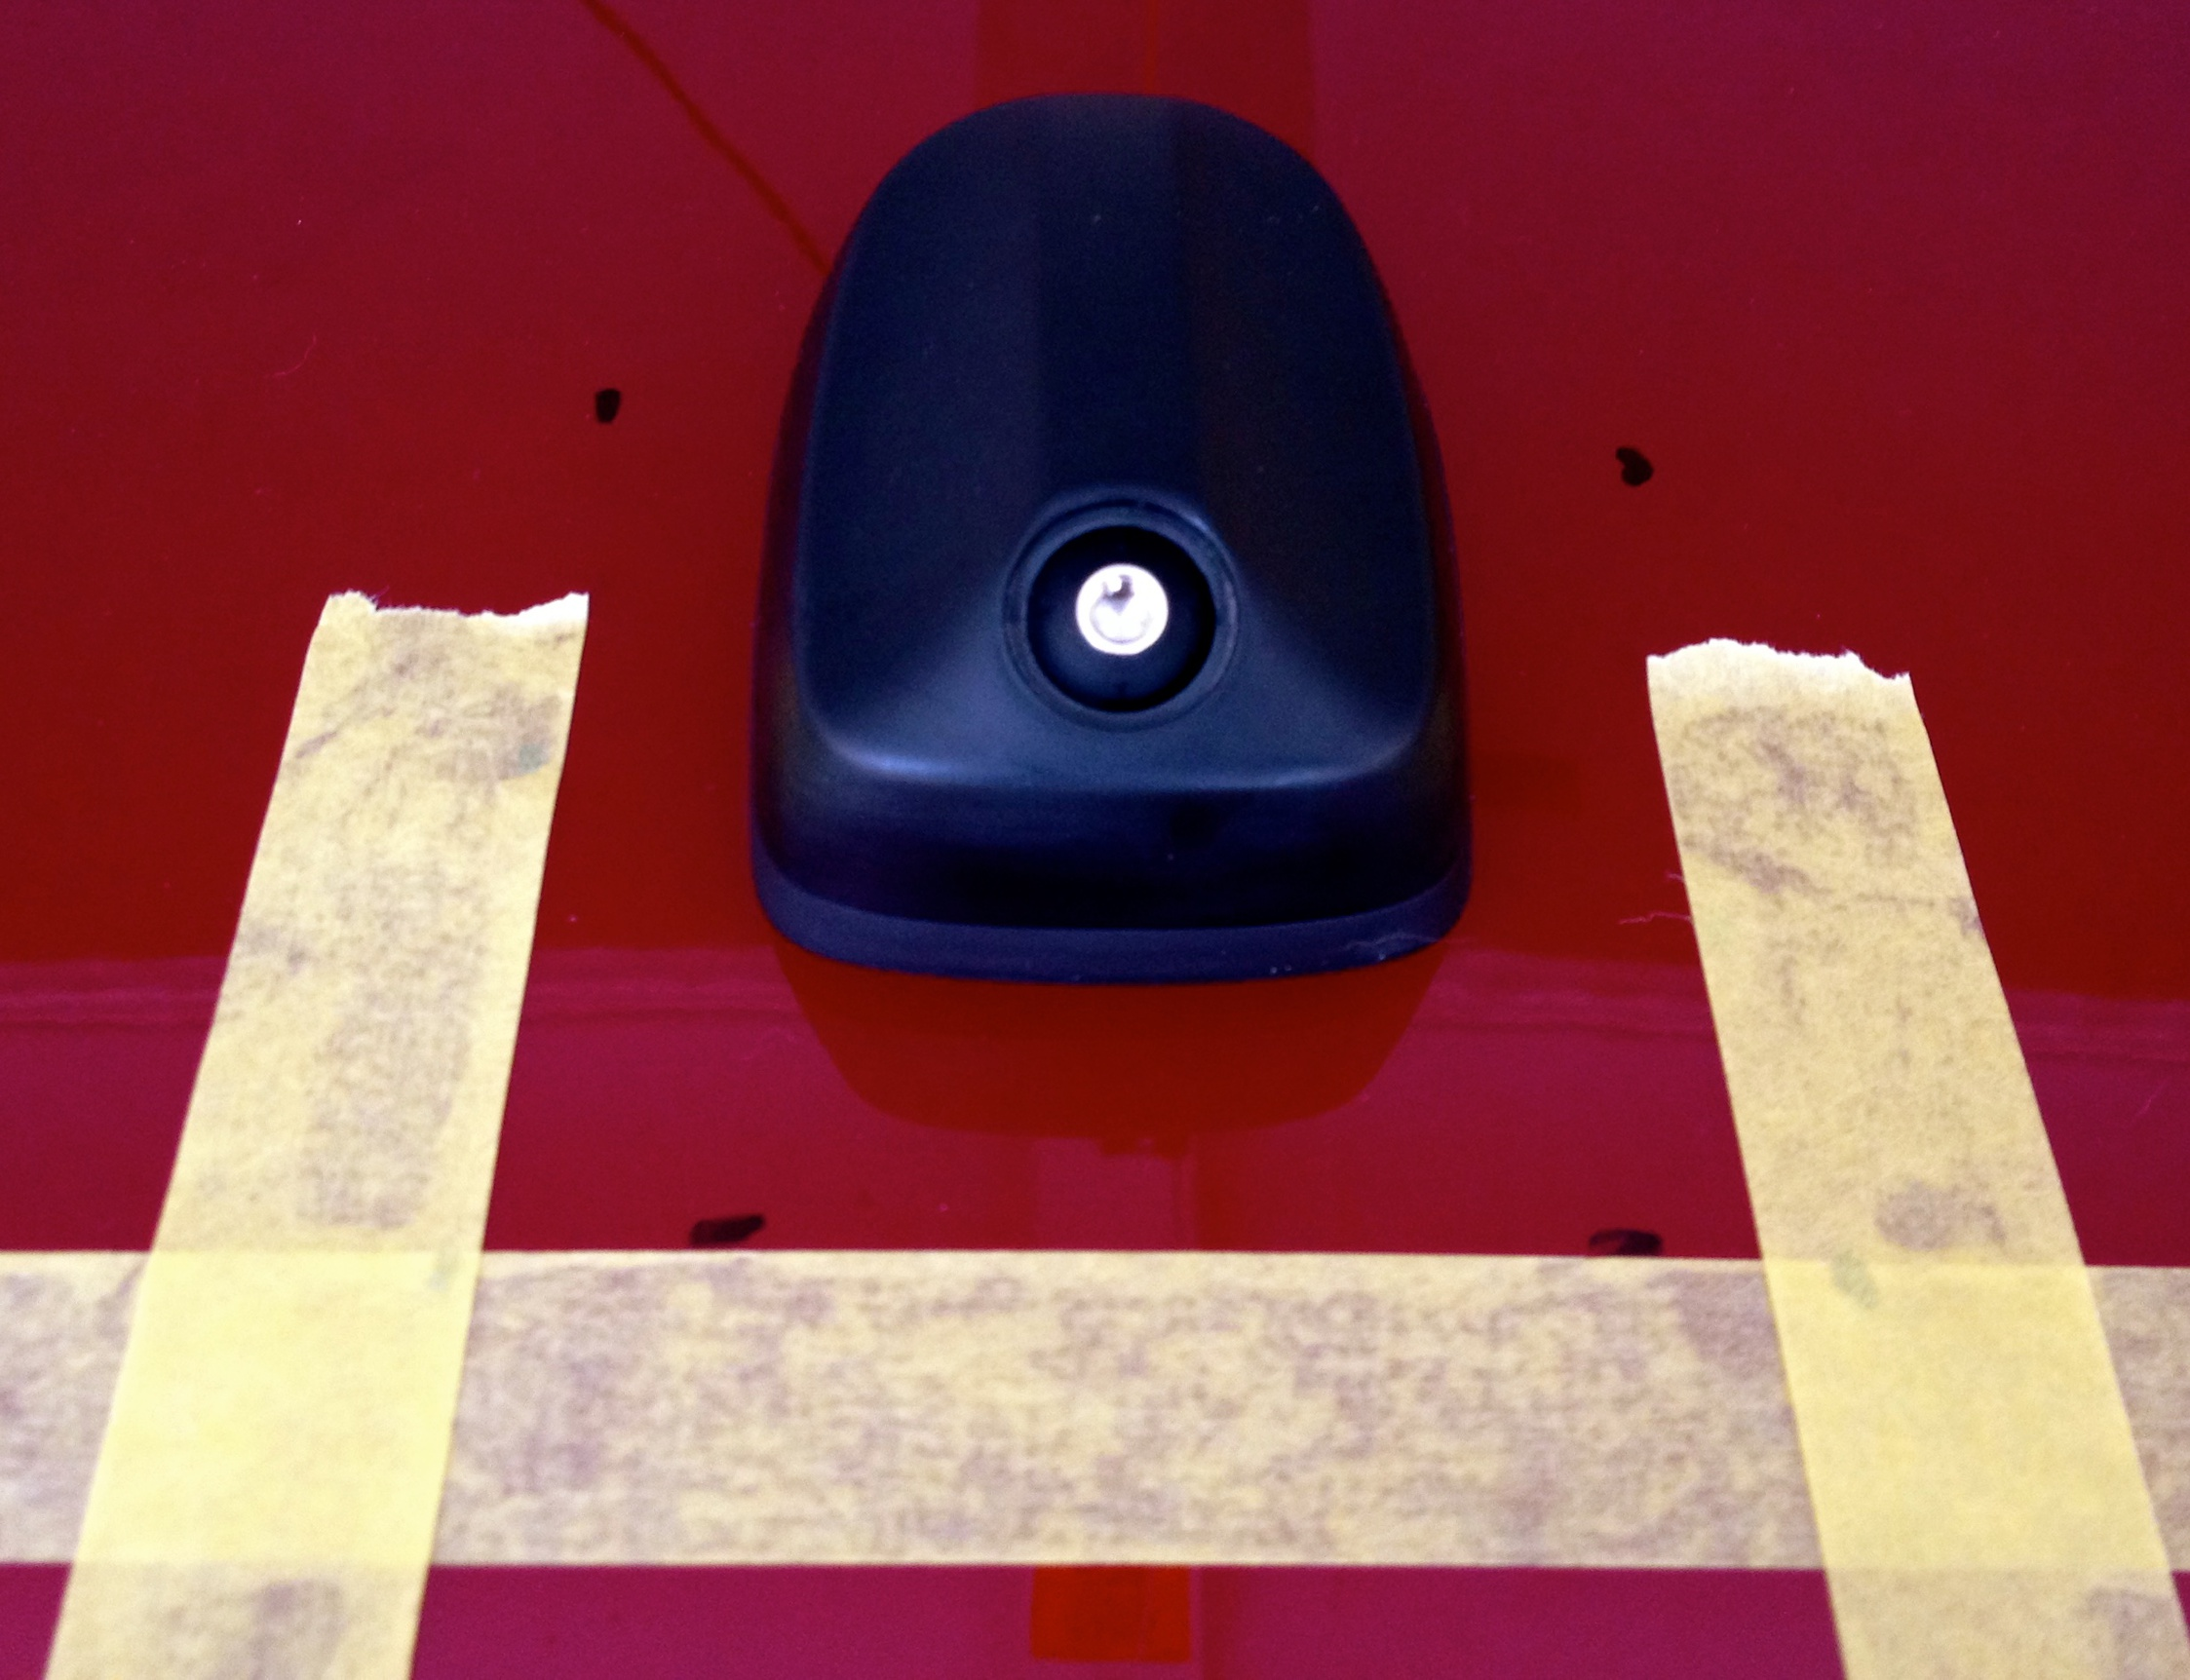 V G Sharkfin Antenna In Ruby Red Ford Focus Forum St 2014 Img 1508 2